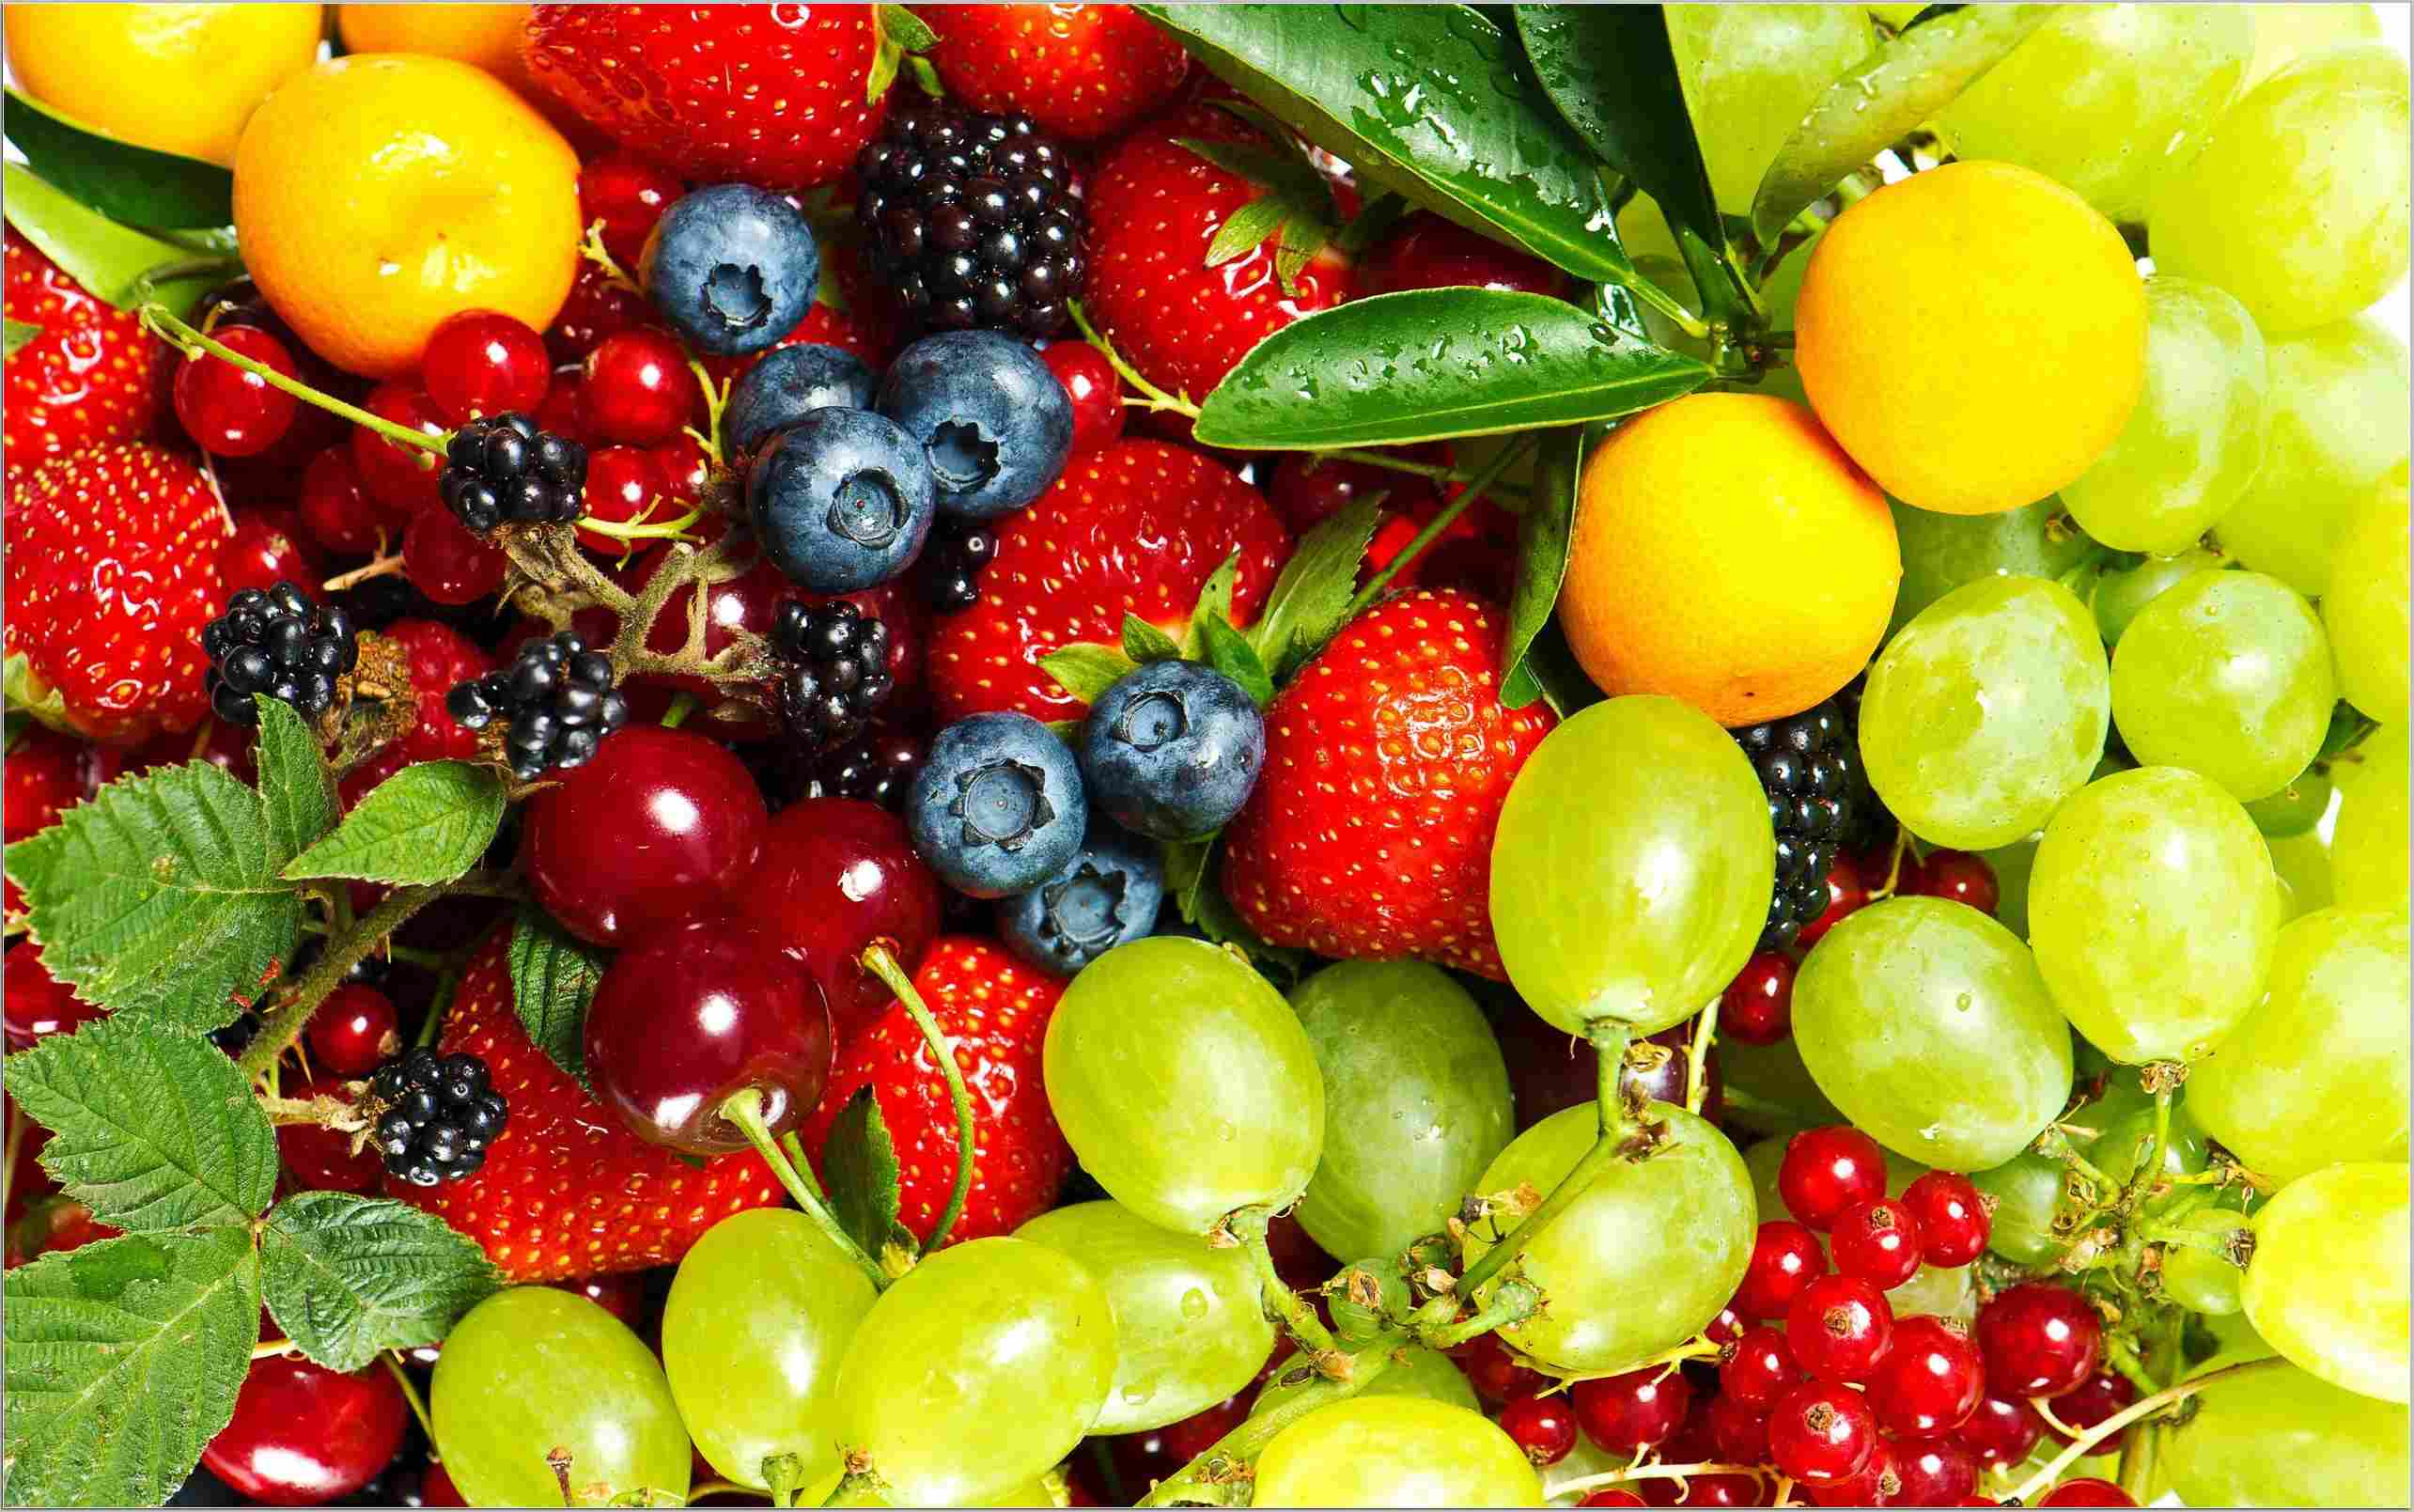 Fruits 4K Wallpapers   Top Fruits 4K Backgrounds 2569x1609